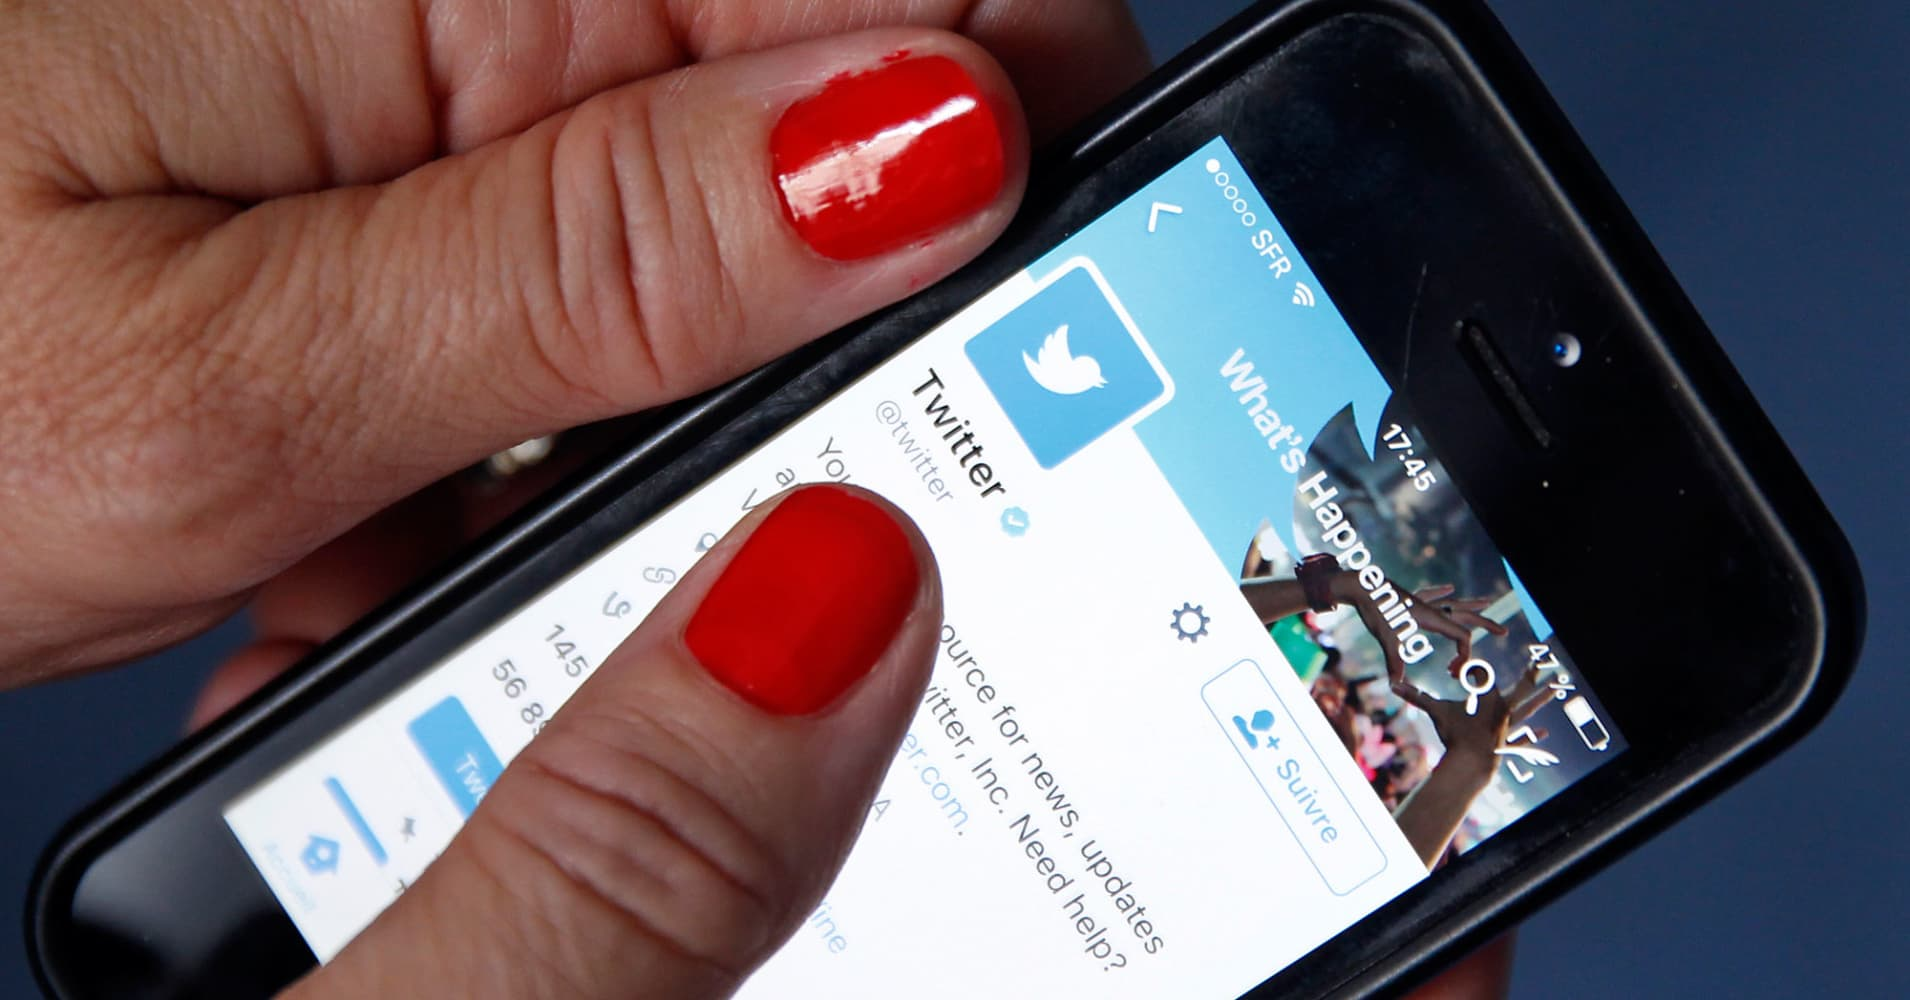 The Most Prolific People on Twitter are Mostly Women, Pew Survey Finds